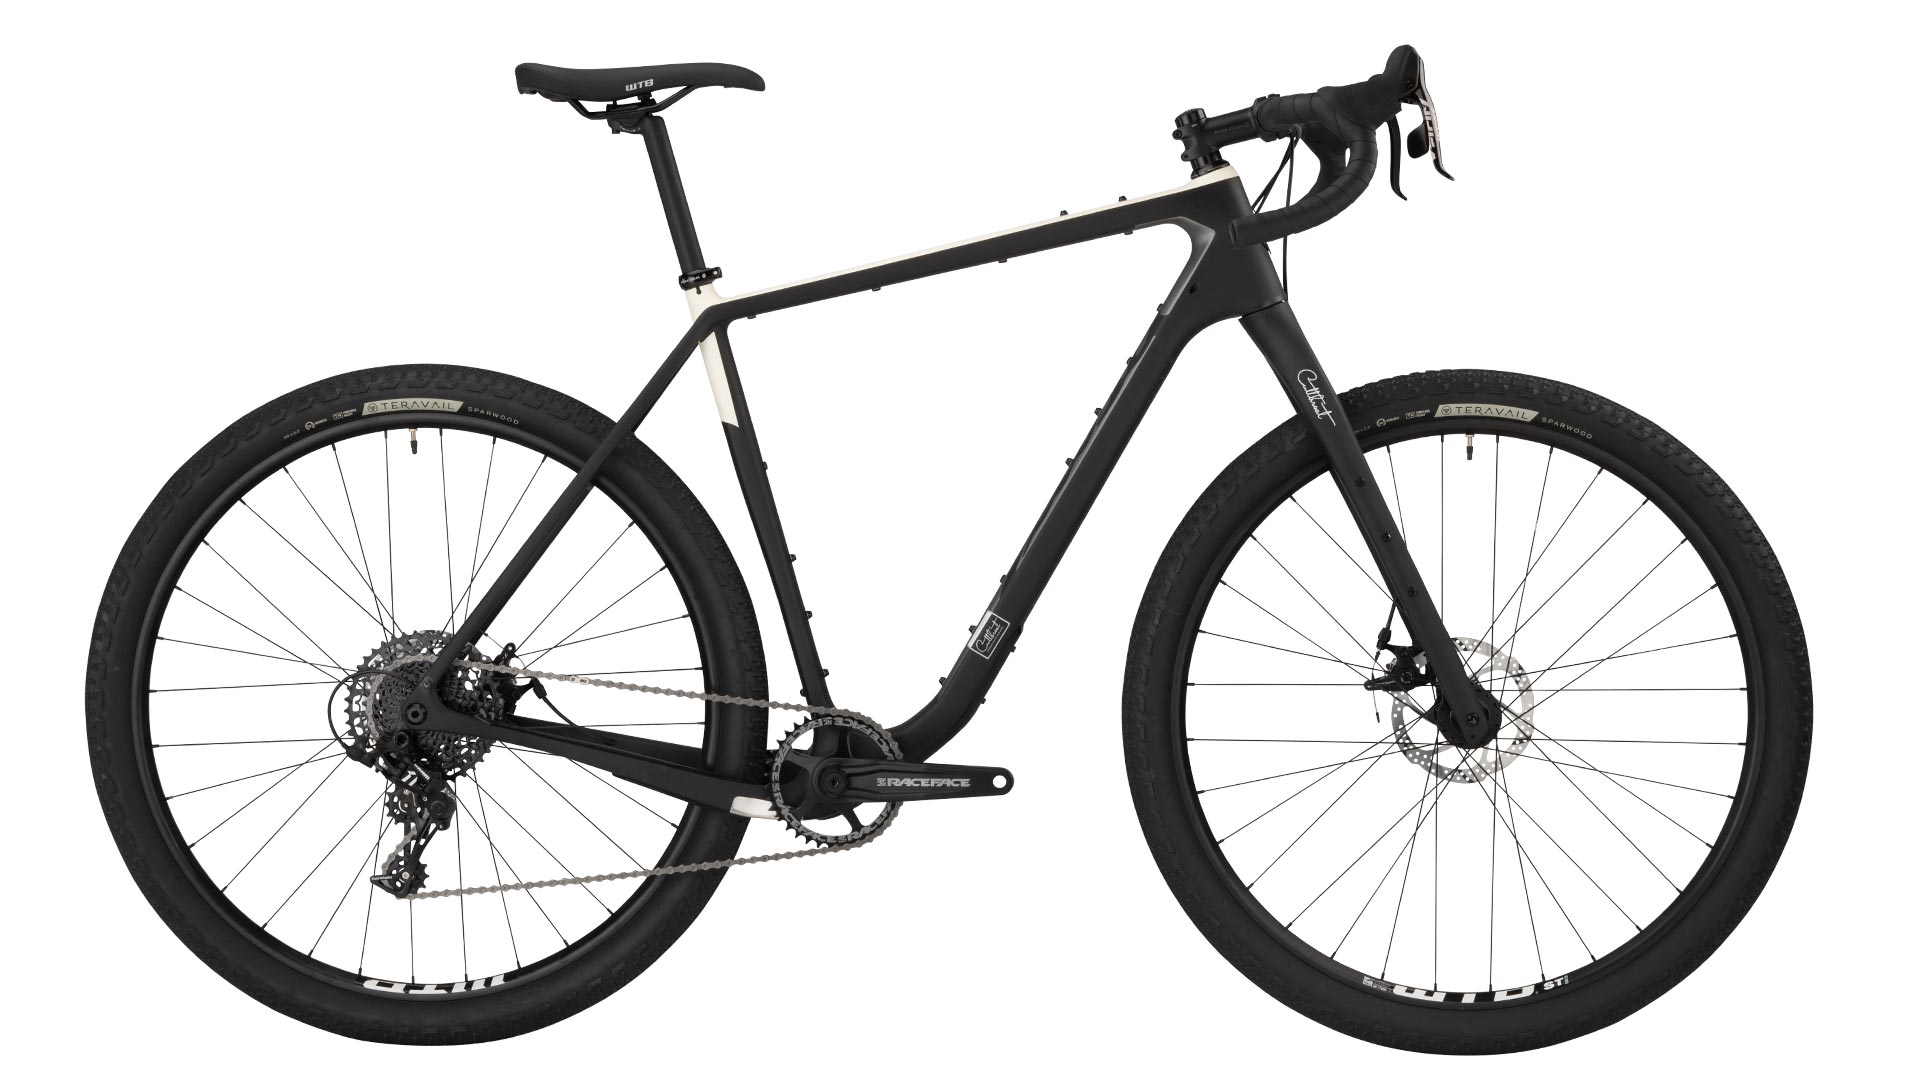 Salsa Cutthroat 2020 Apex 1 in Black